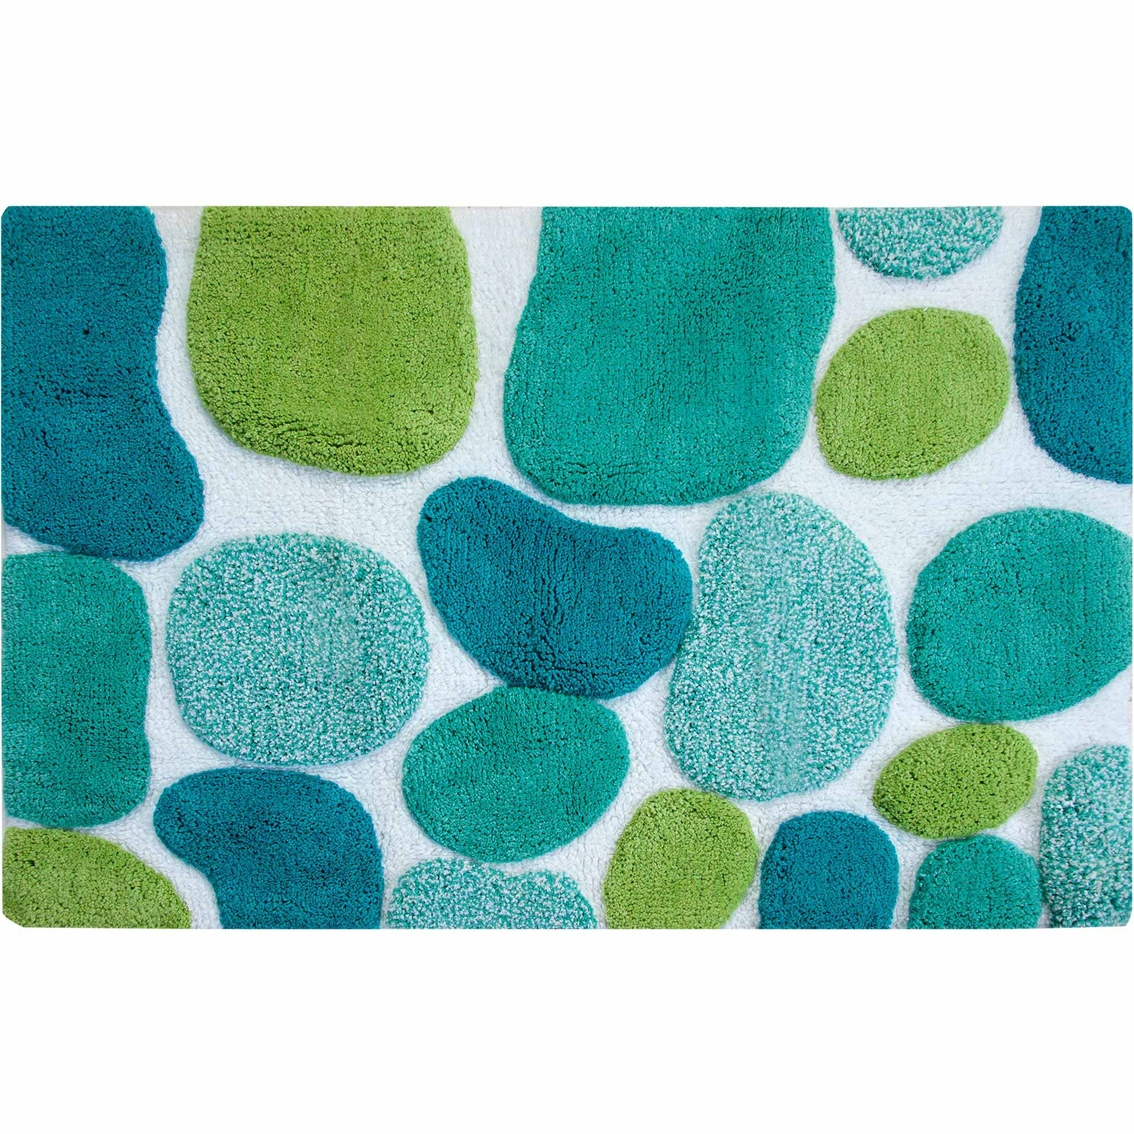 Chesapeake Multicolored Bath Rug